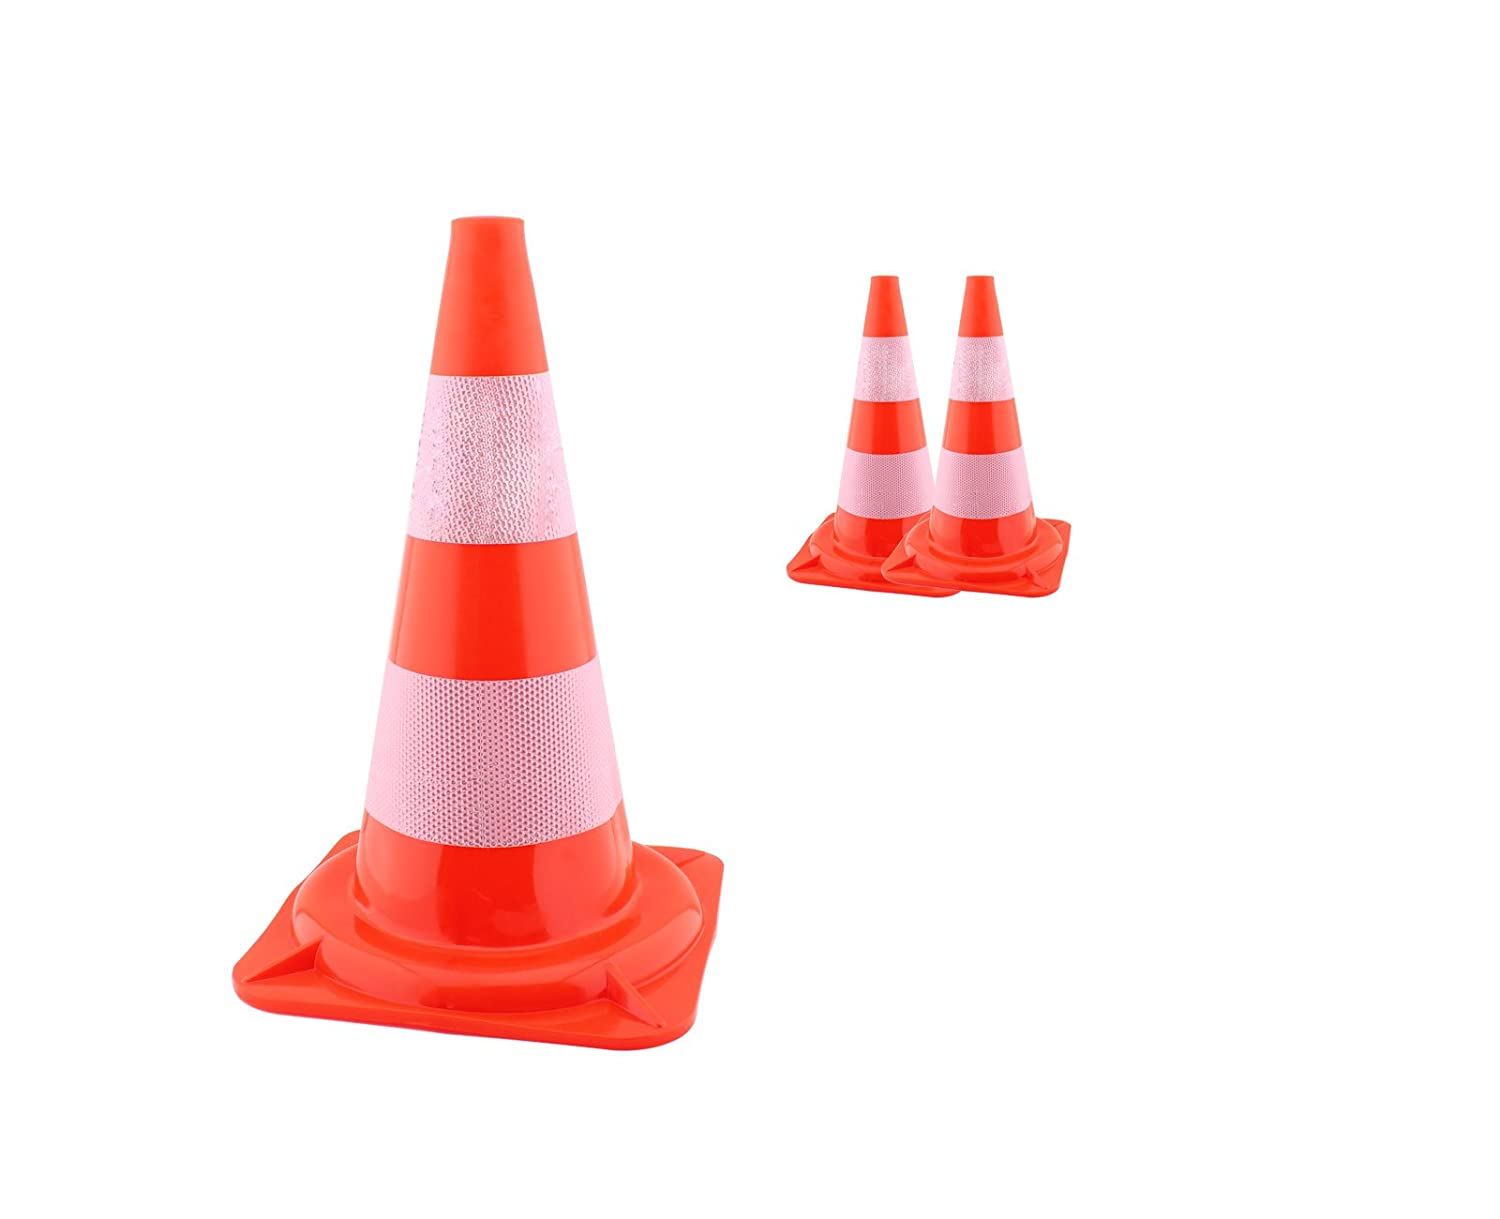 Set of 2  Traffic Traffic Cone Pylone Warning Cone Hats Lü becker Hat Parcours myowntrade